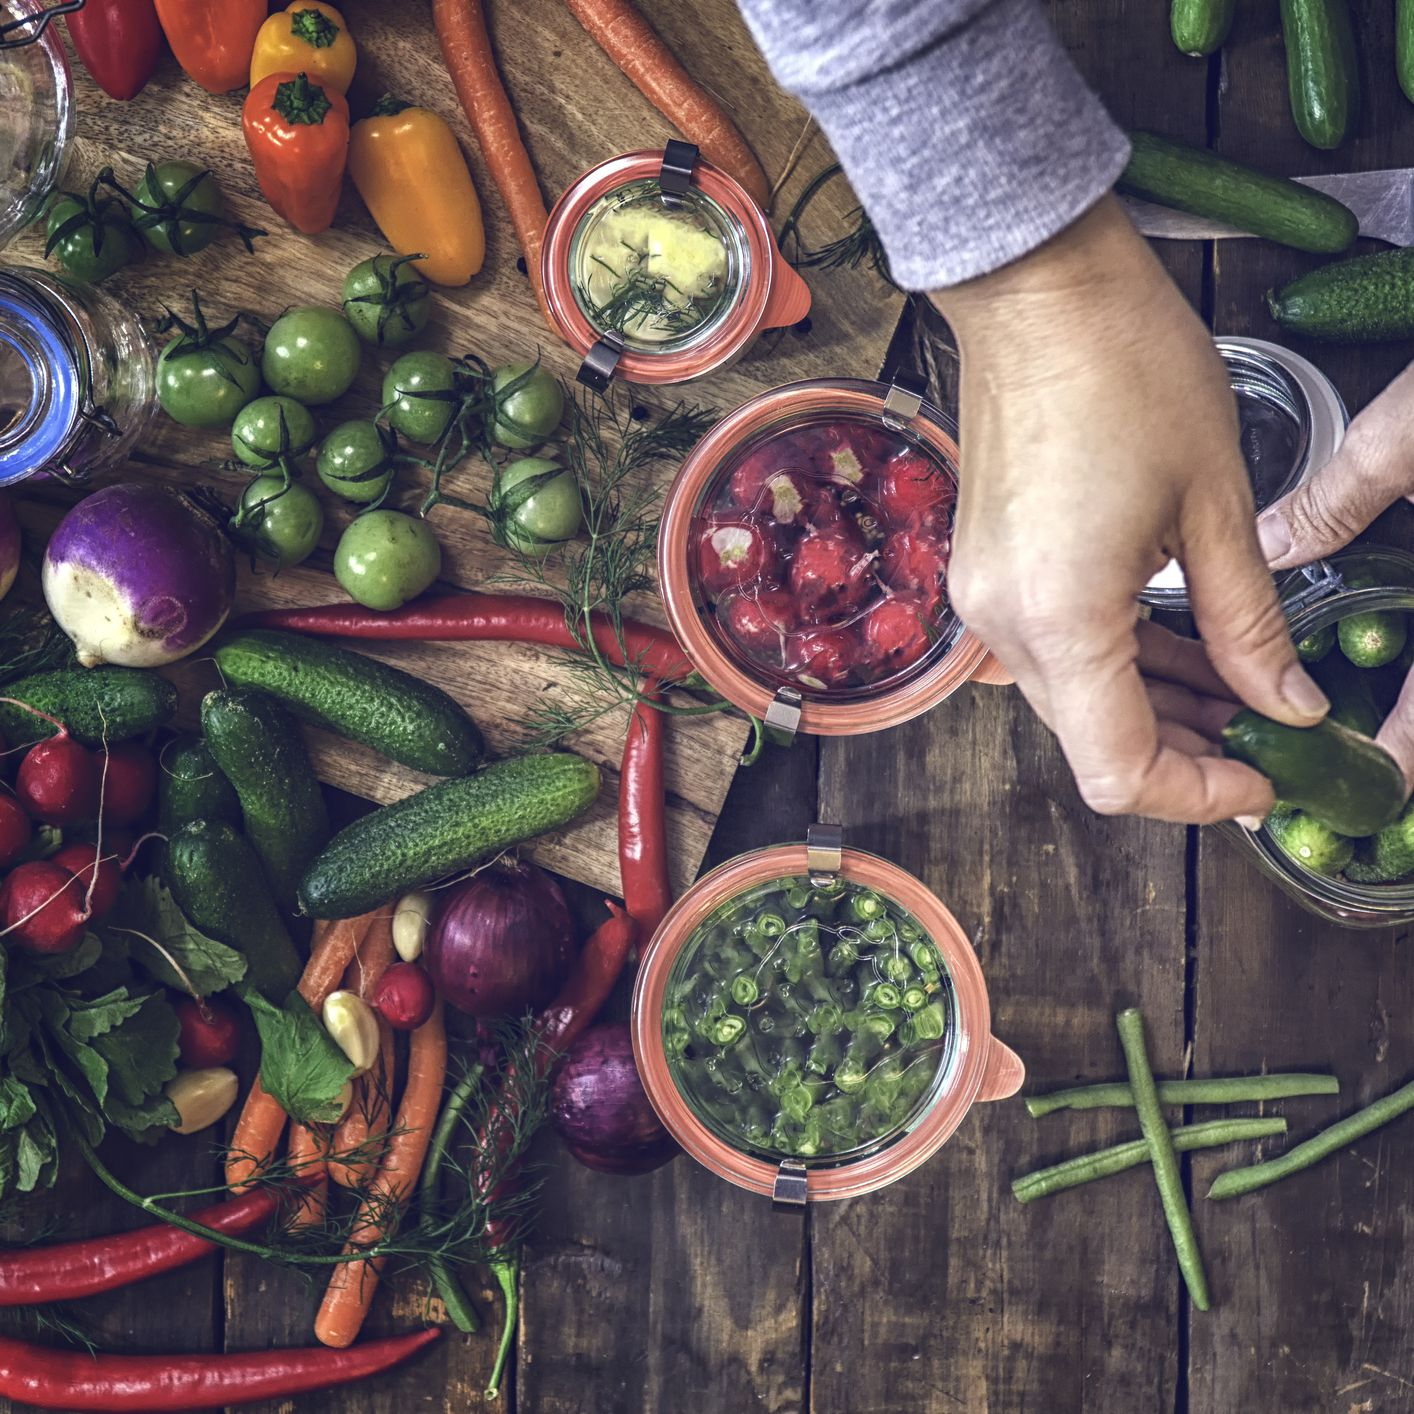 How to Pickle Vegetables at Home